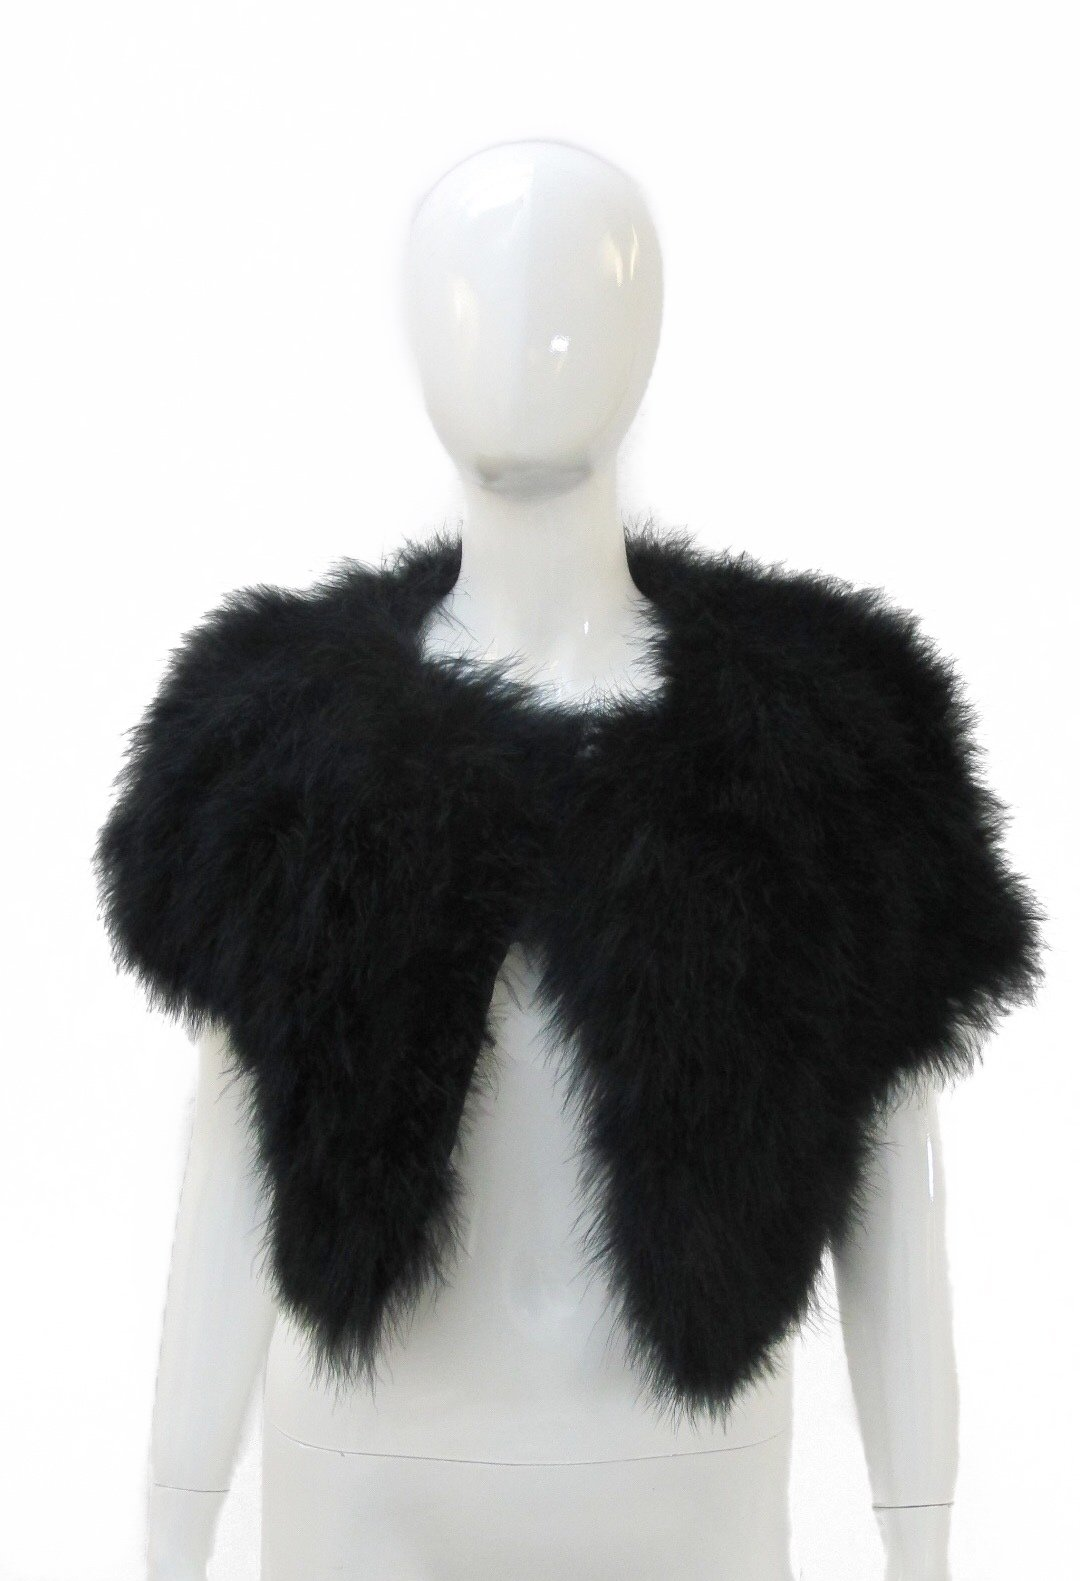 ANNABELLE NEW YORK Marabou Feather Cropped Jacket (Large, Black) by Annabelle New York